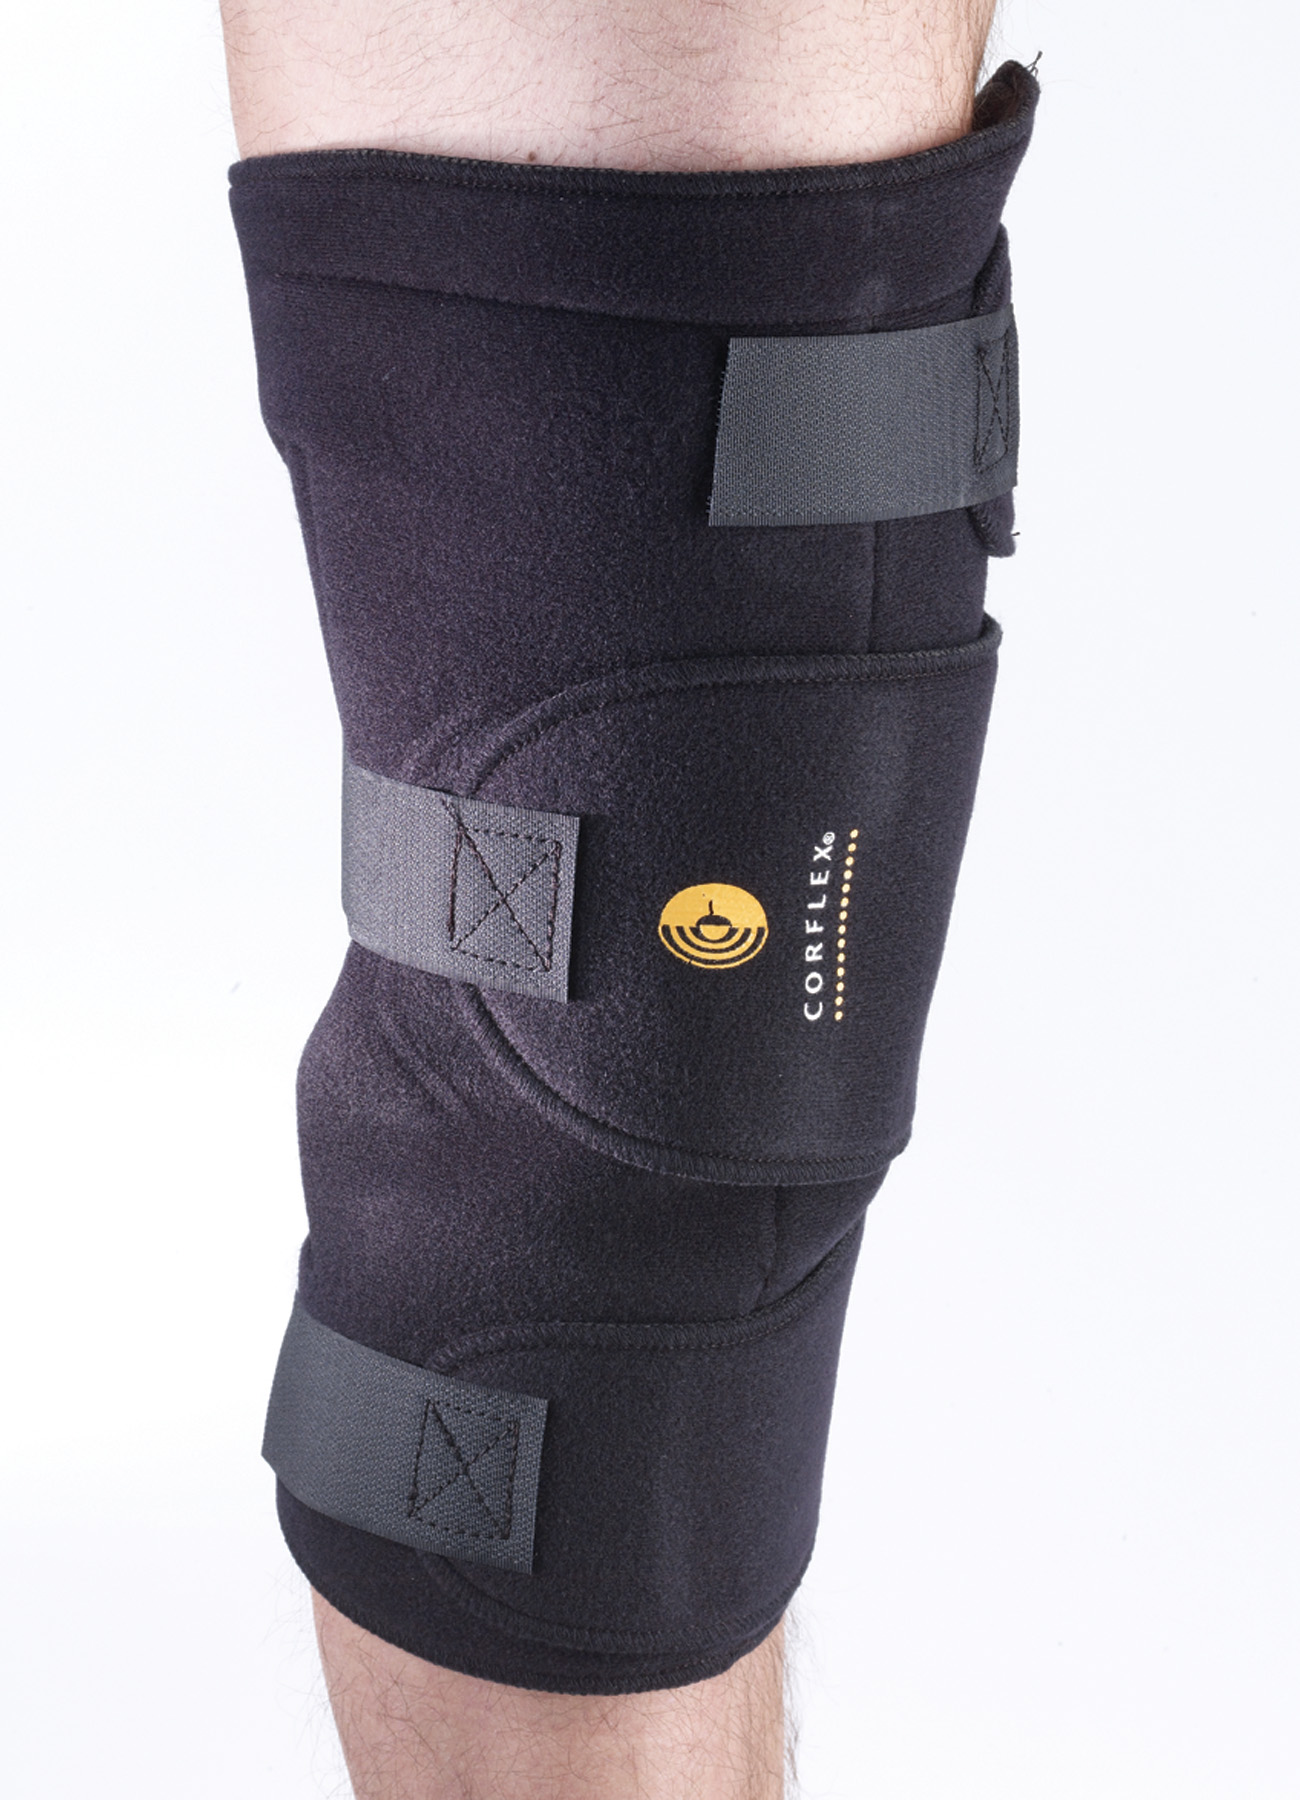 Cryotherm Knee Wrap